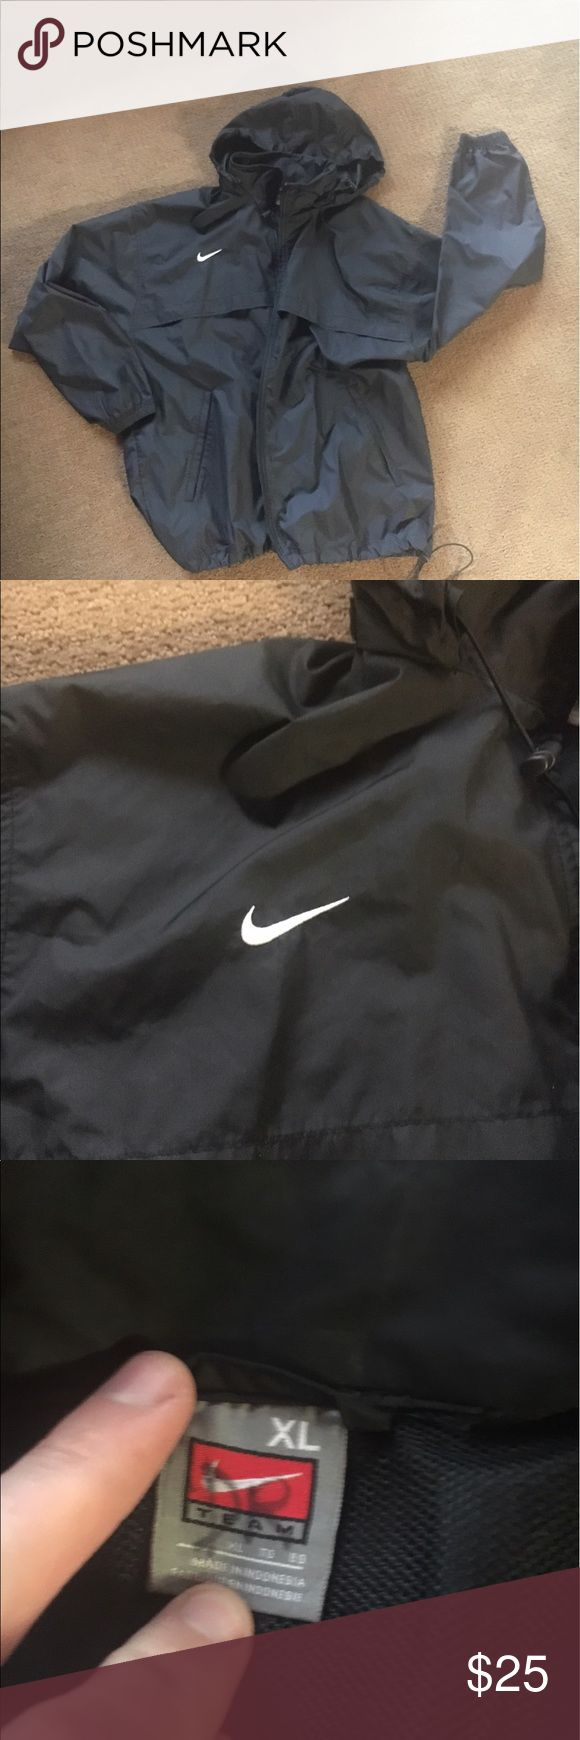 *MAKE OFFER* Men's Black Windbreaker XL Black windbreaker in great condition and at a great price. Wanting to sell quick. Nike Jackets & Coats Windbreakers